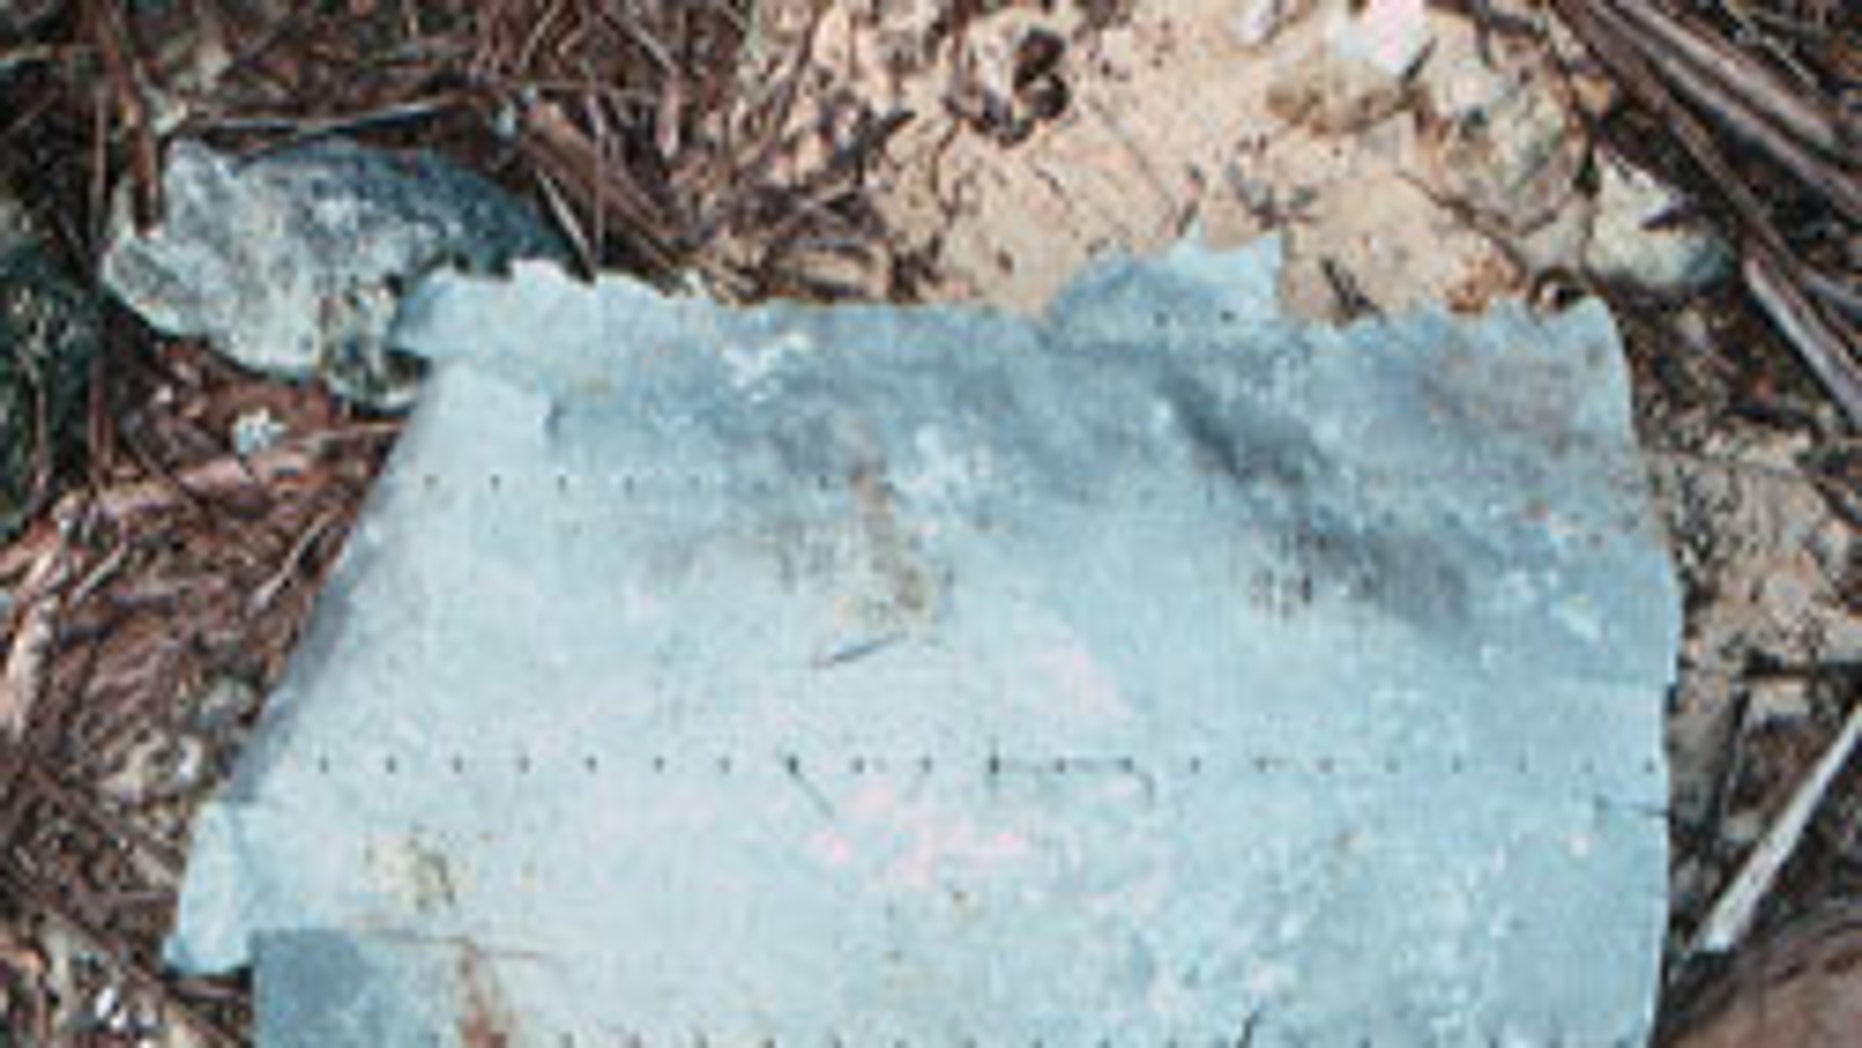 A piece of aluminum debris recovered in 1991 appears to belong to Earhart's lost plane.